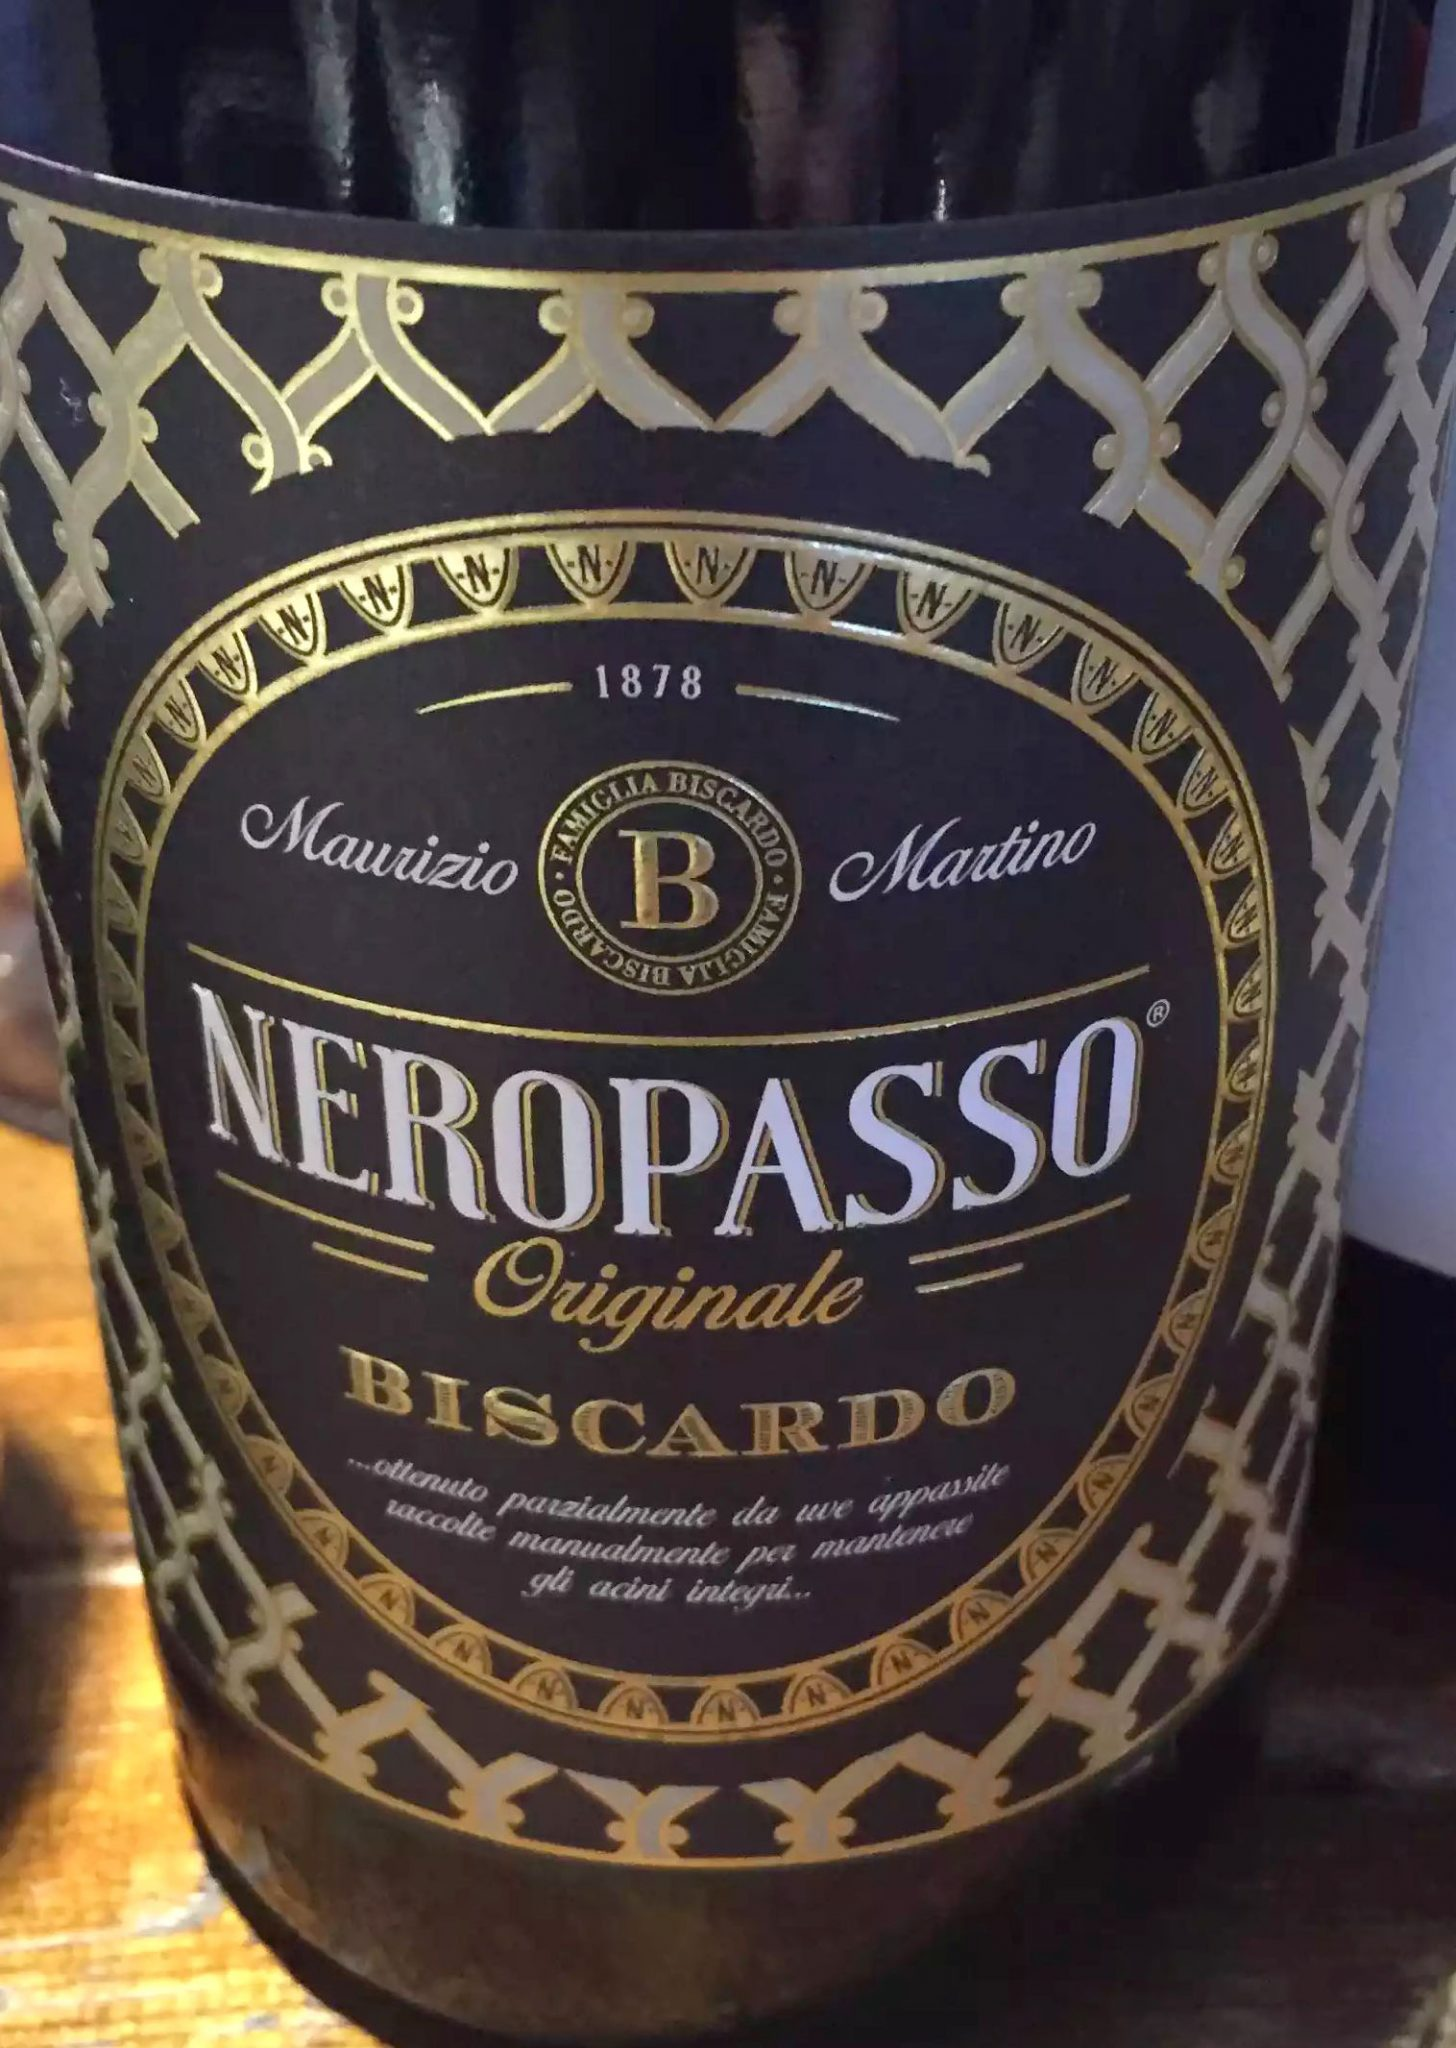 Great Northern Pub St Albans Wine Tasting Dinner Neropasso Biscardo Amarone